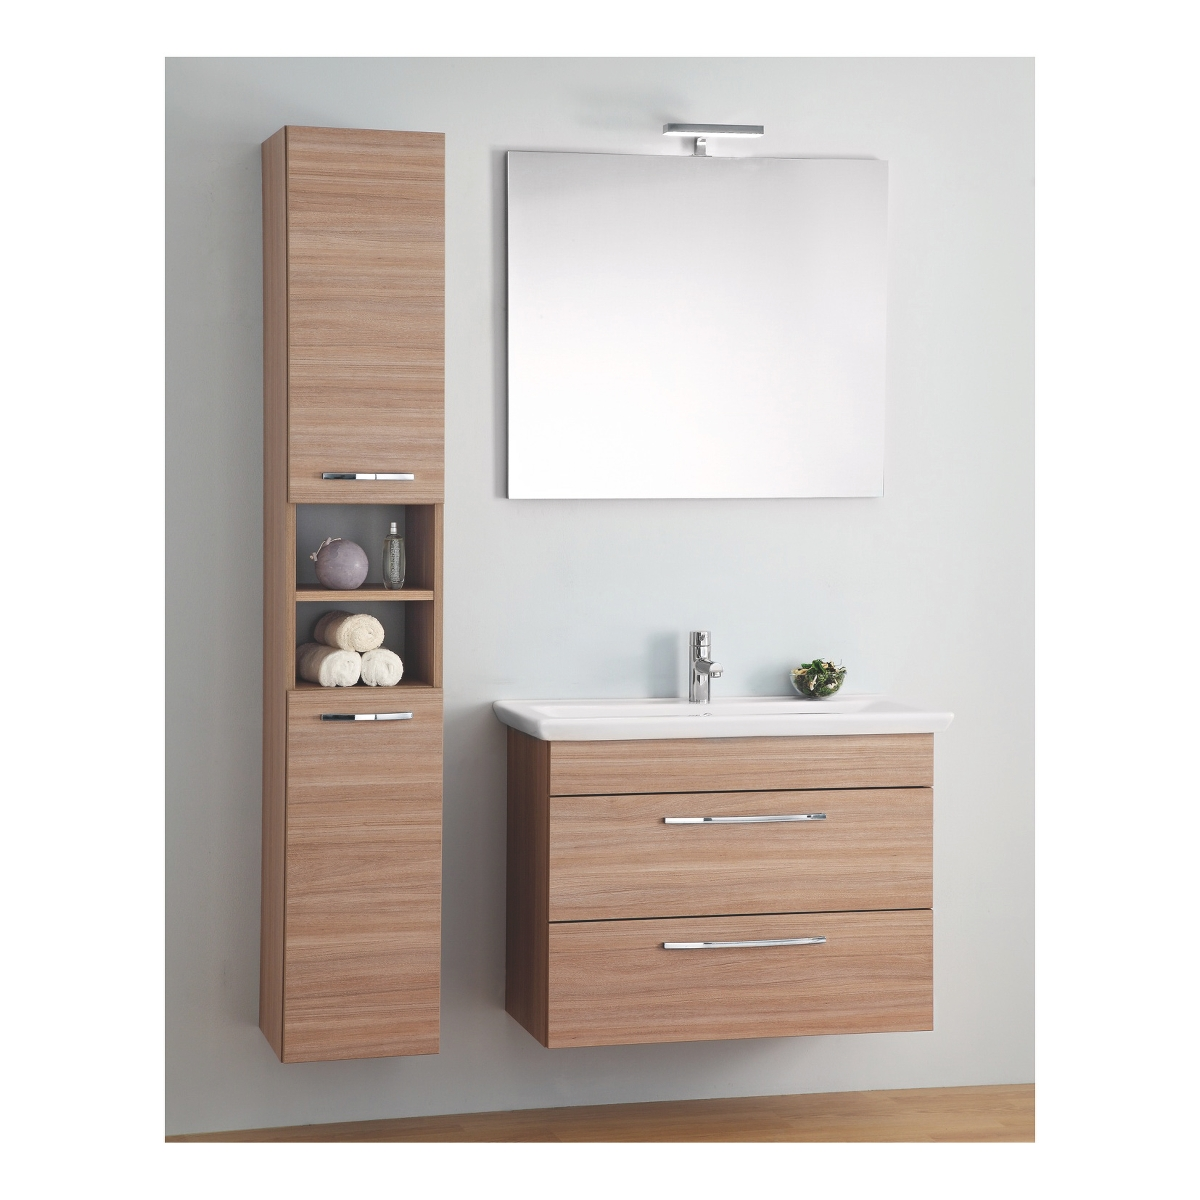 Leroy merlin mobile bagno gi 115 mobili bagno bathrooms pinterest wood bathroom and - Specchiera bagno leroy merlin ...